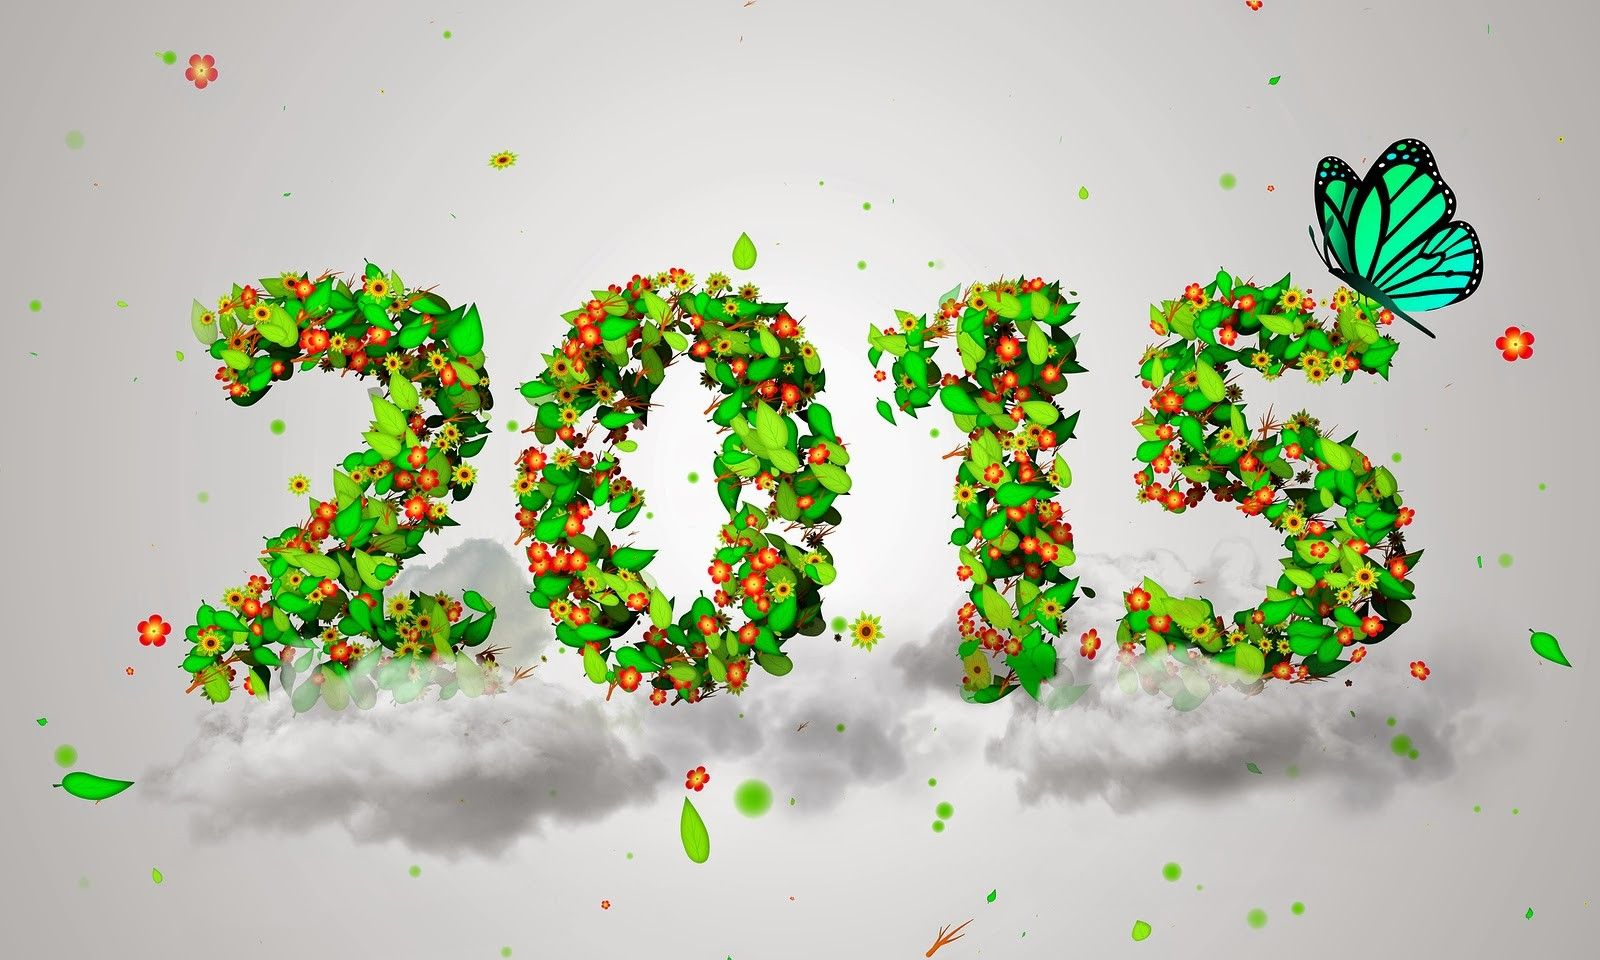 2015 new year crafts with the green leaves happy new year 2015 2015 new year crafts with the green leaves happy new year 2015 greeting cards m4hsunfo